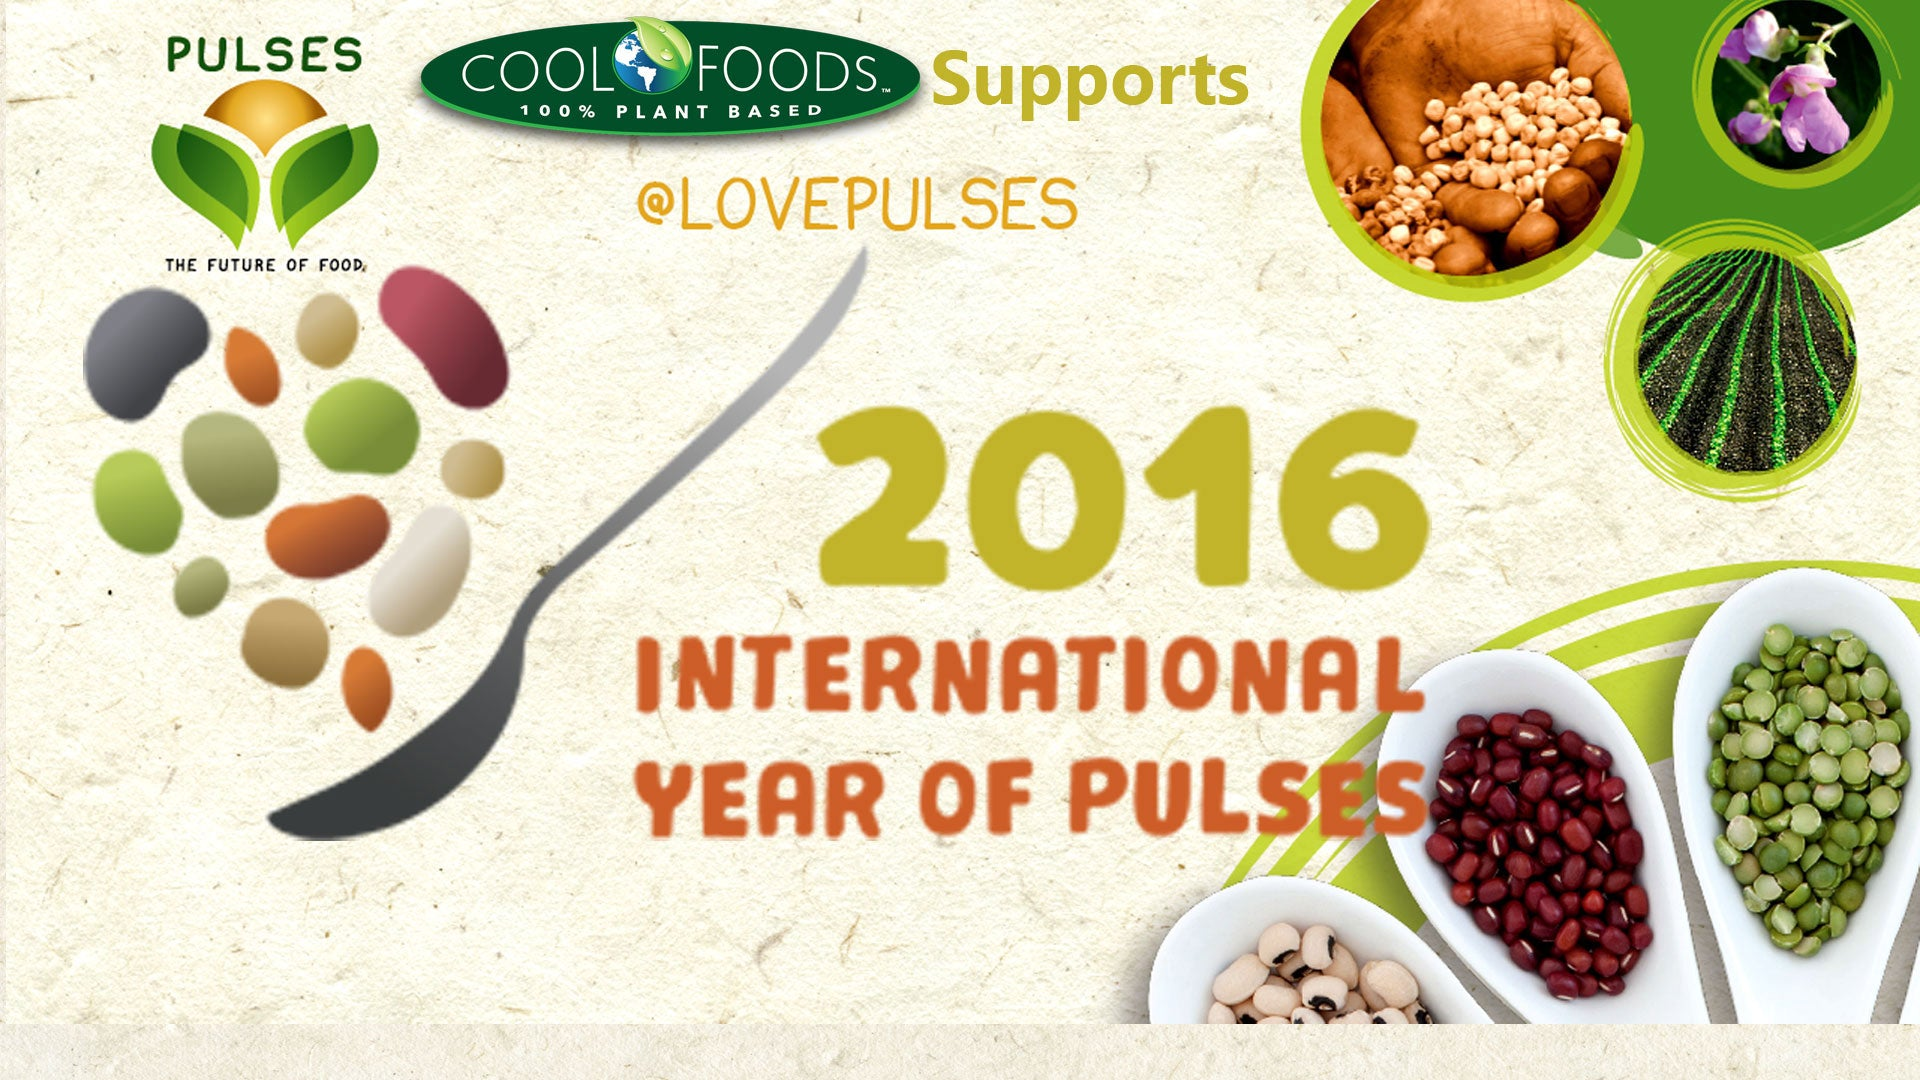 Cool Foods supports the 2016 Year of Pulses